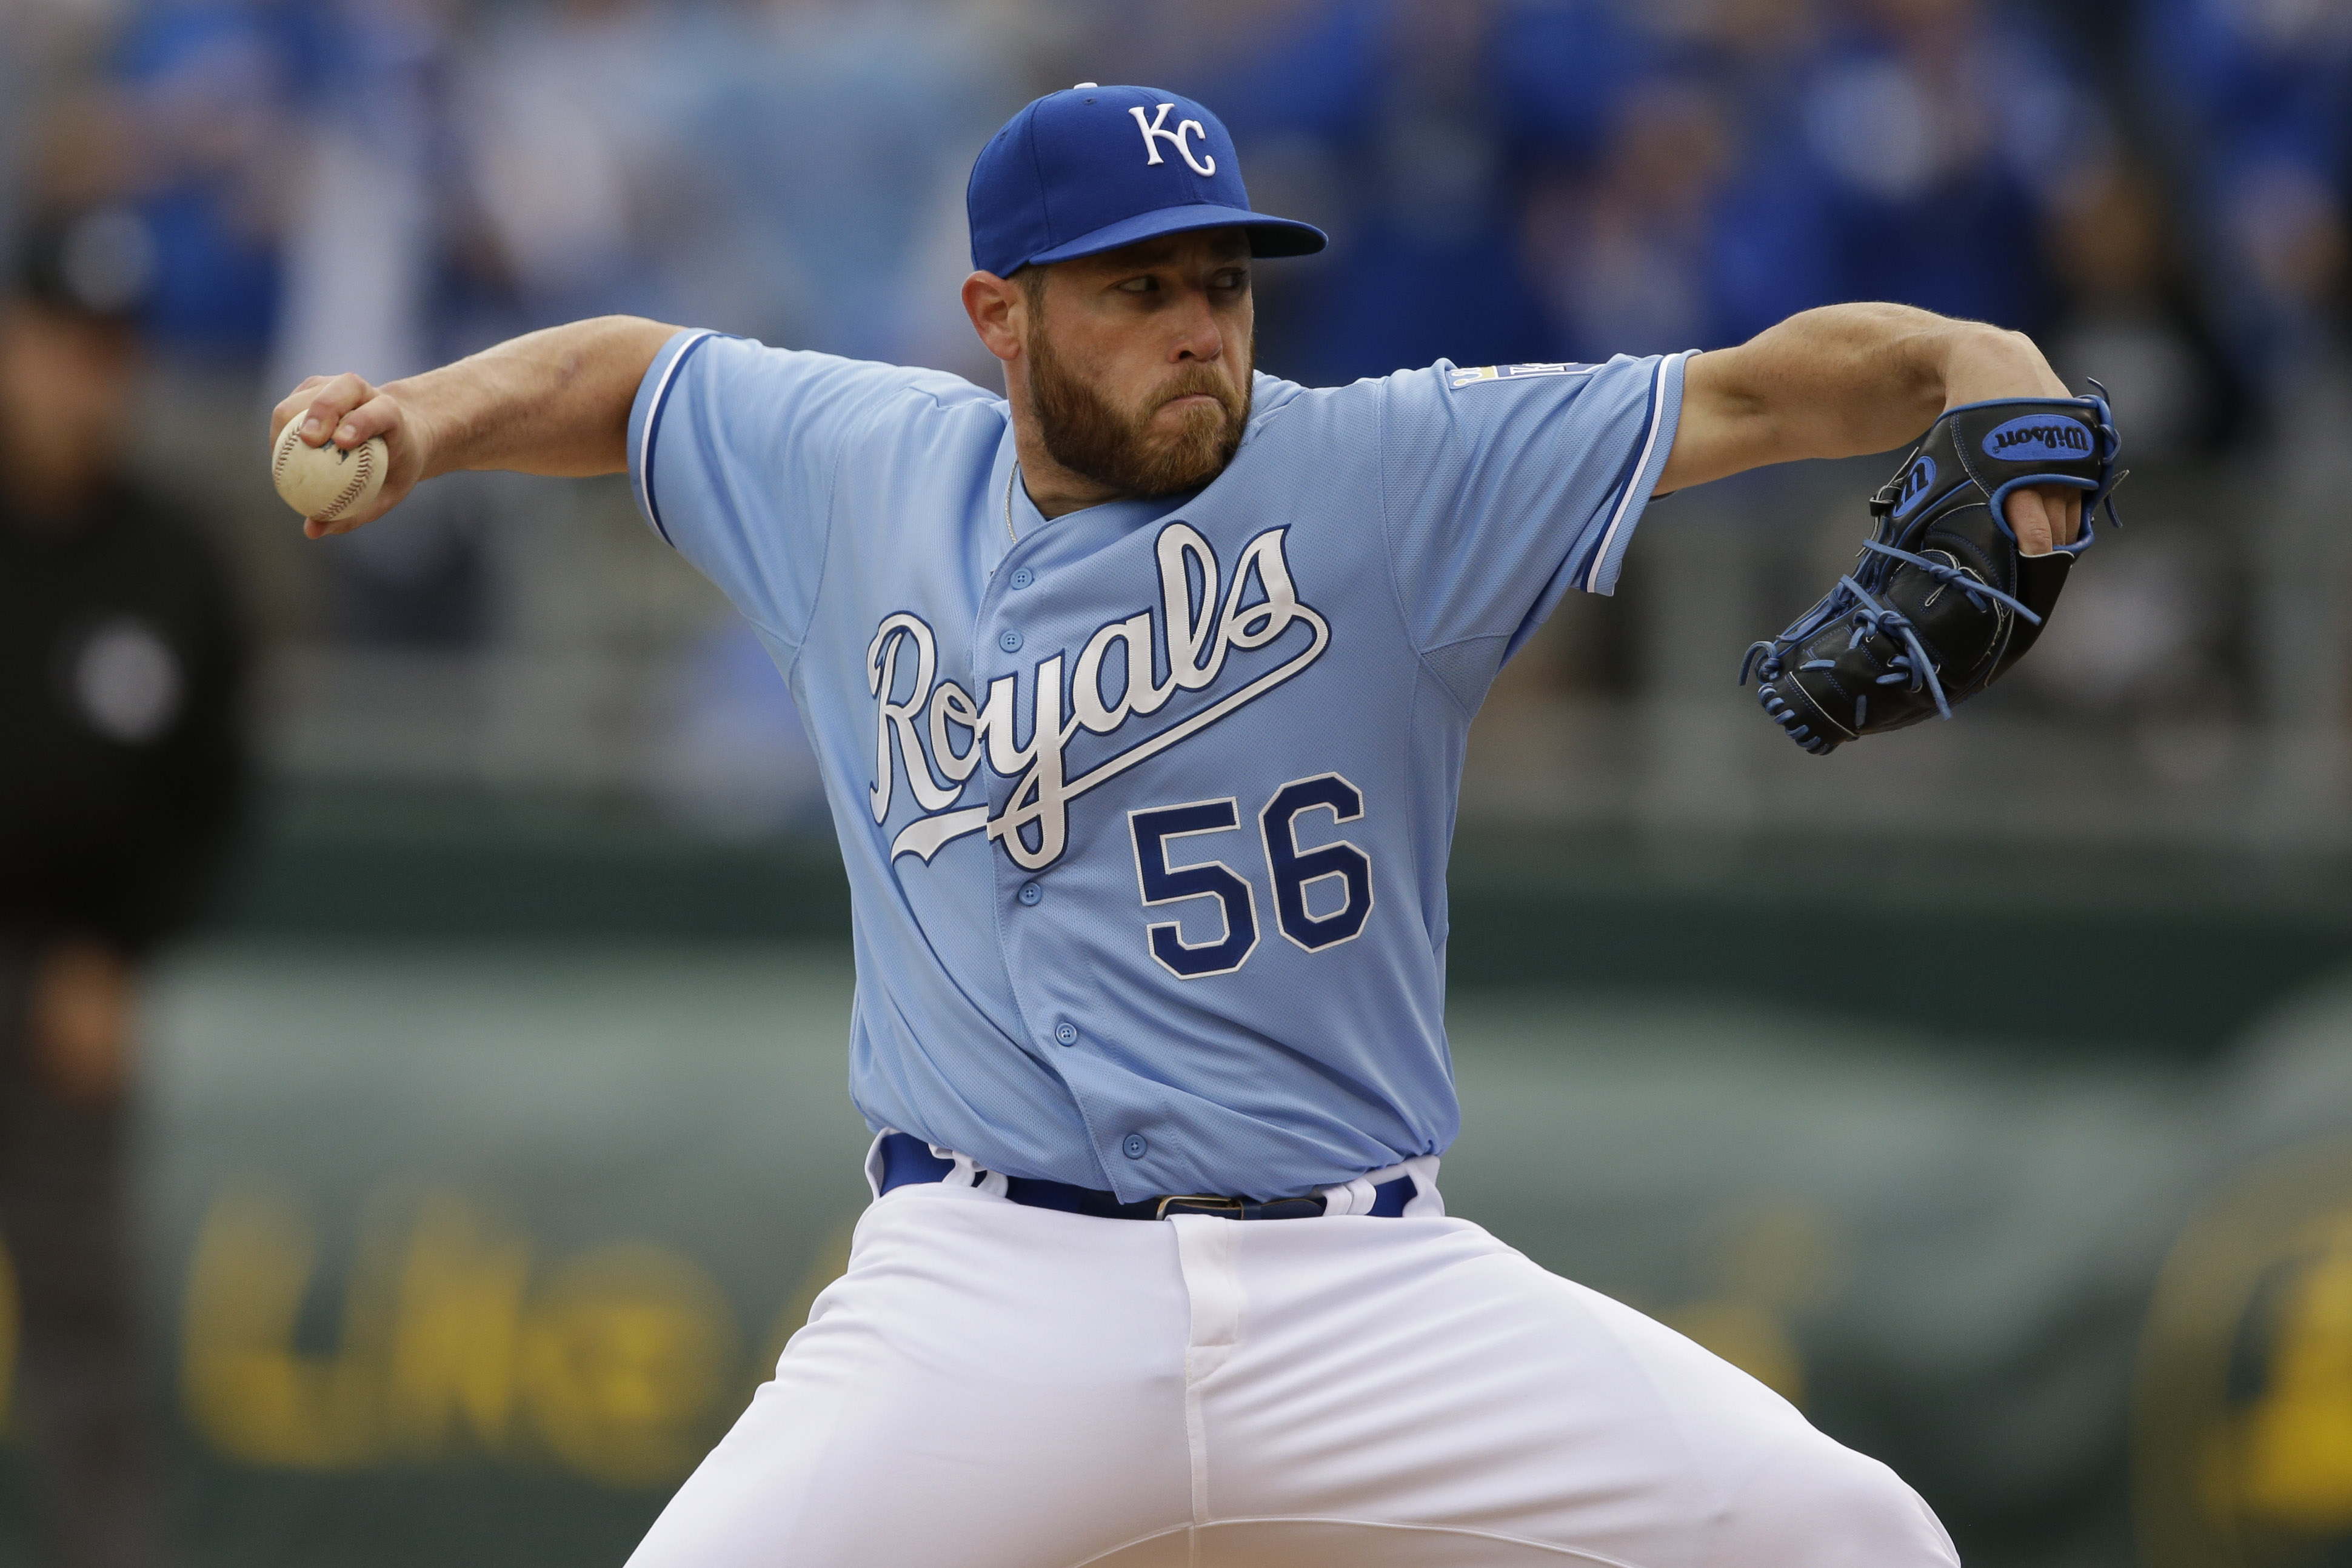 Royals closer Greg Holland headed to DL with pectoral strain